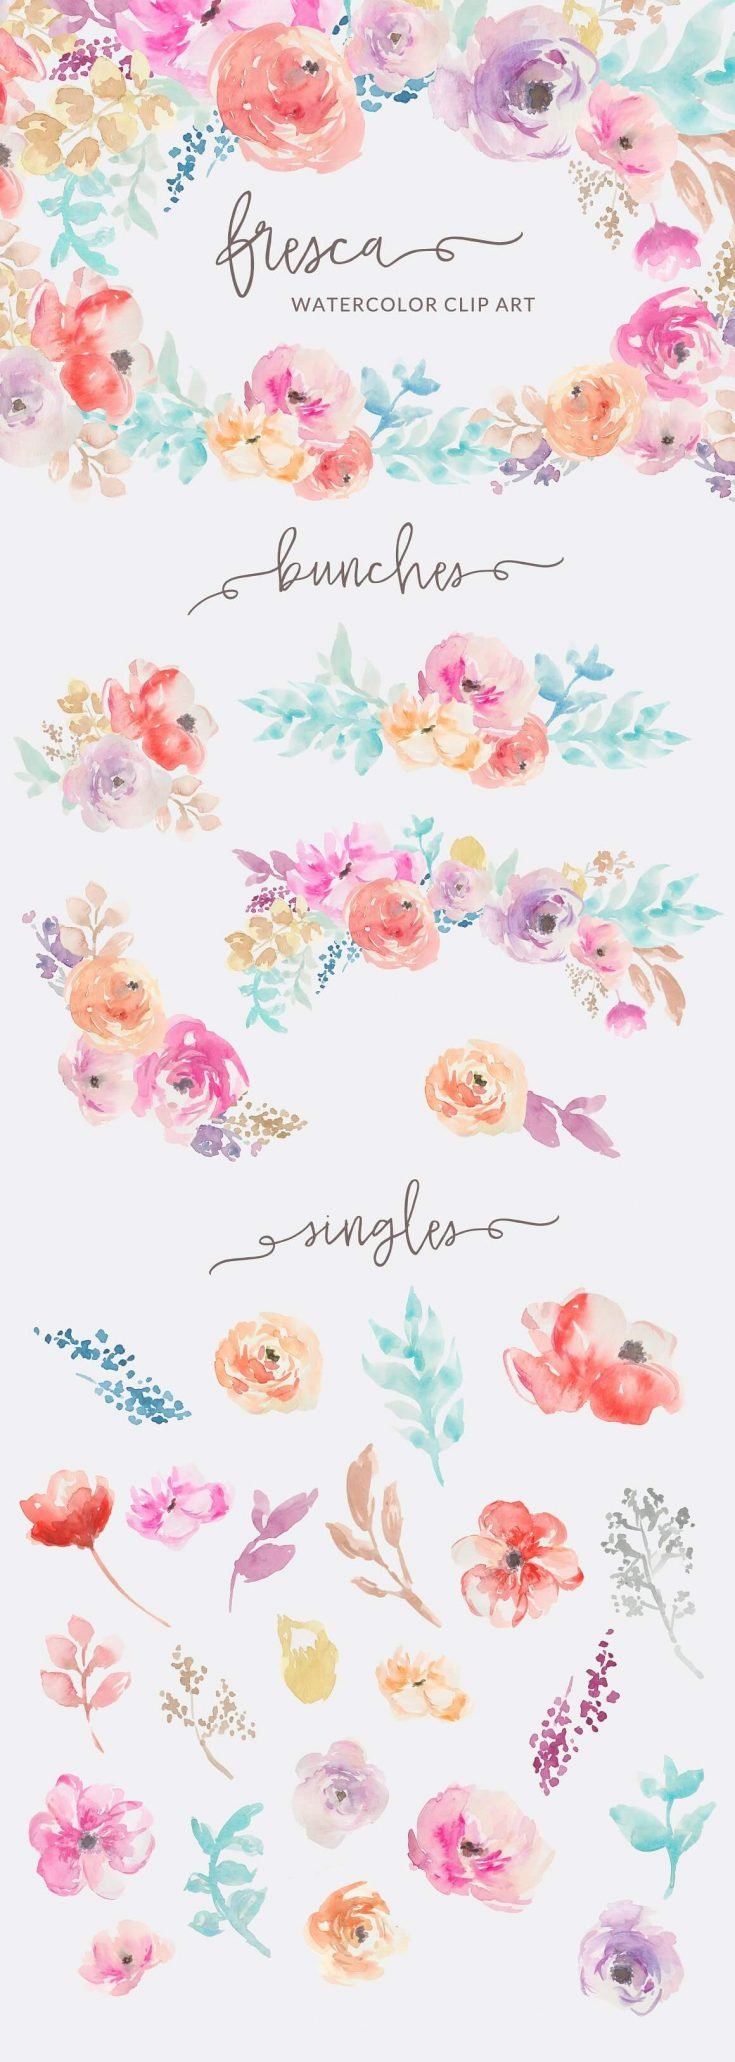 Fresca Watercolor Flower Clip Art Includes 4 Bouquets And 48 Other Individual PNG Images On Transparent Backgrounds